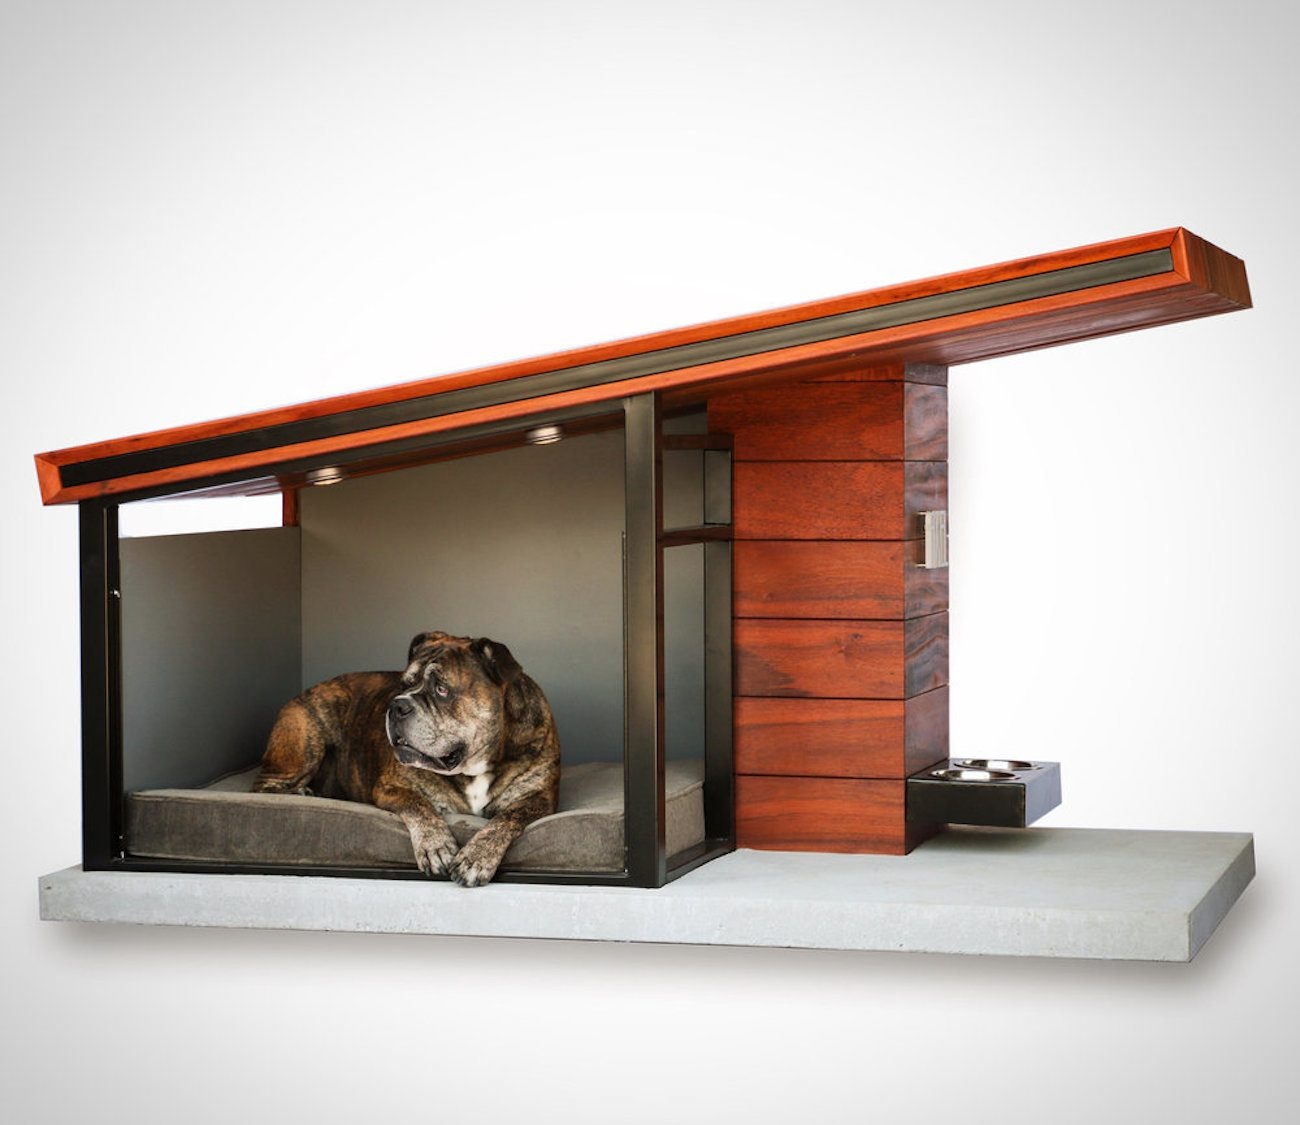 mdk9 dog haus luxury dog house review the gadget flow. Black Bedroom Furniture Sets. Home Design Ideas